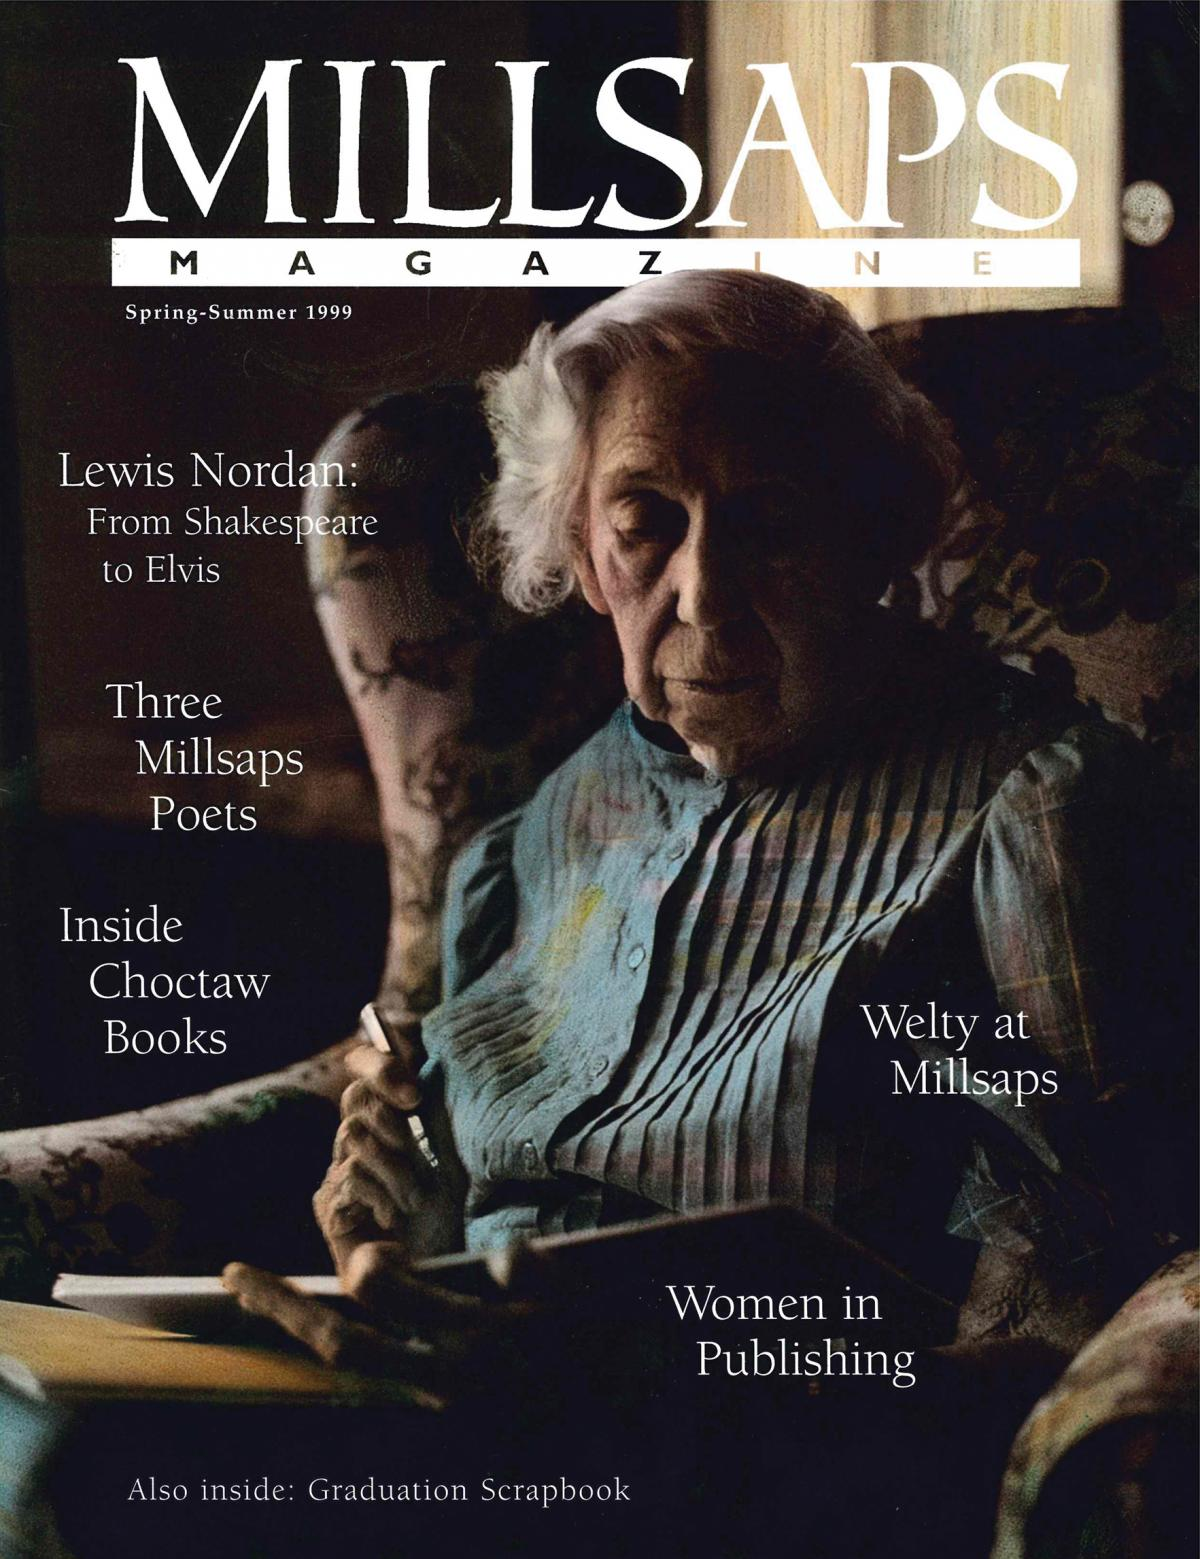 magazine cover of an older woman sitting in a chair